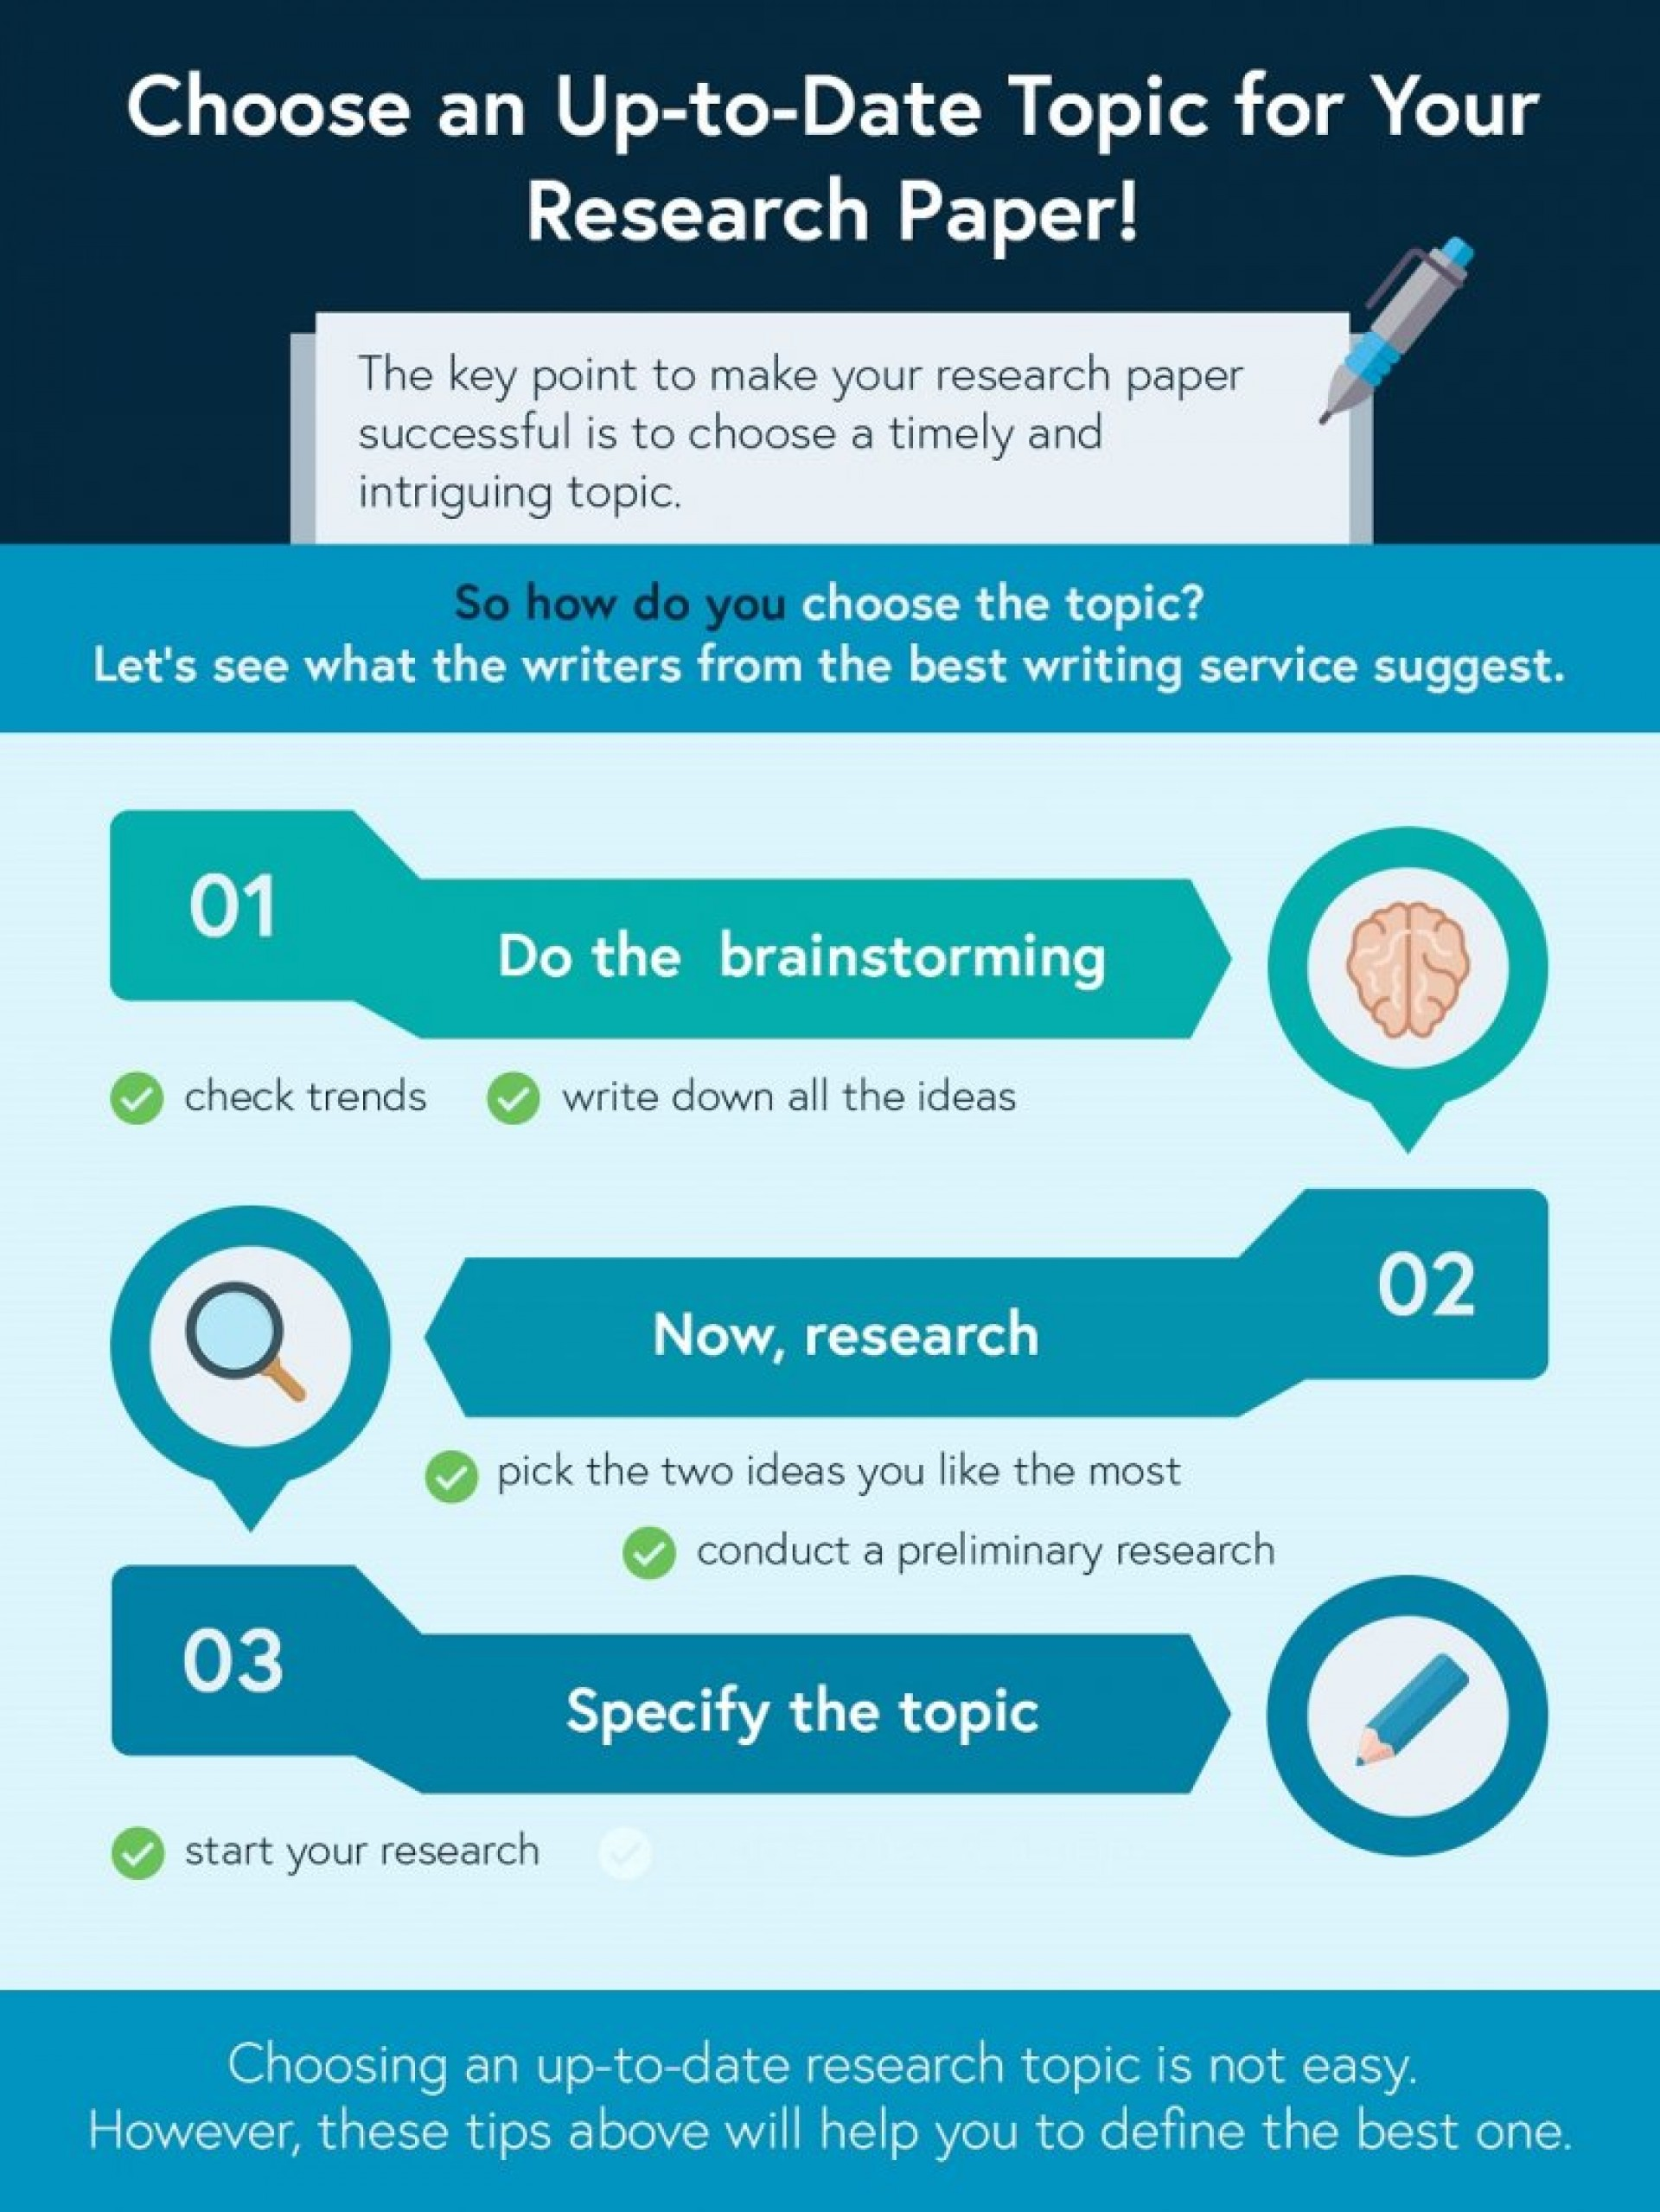 004 Infographic Research Paper Papers Writing Outstanding Service Services In Chennai Reddit India 1920